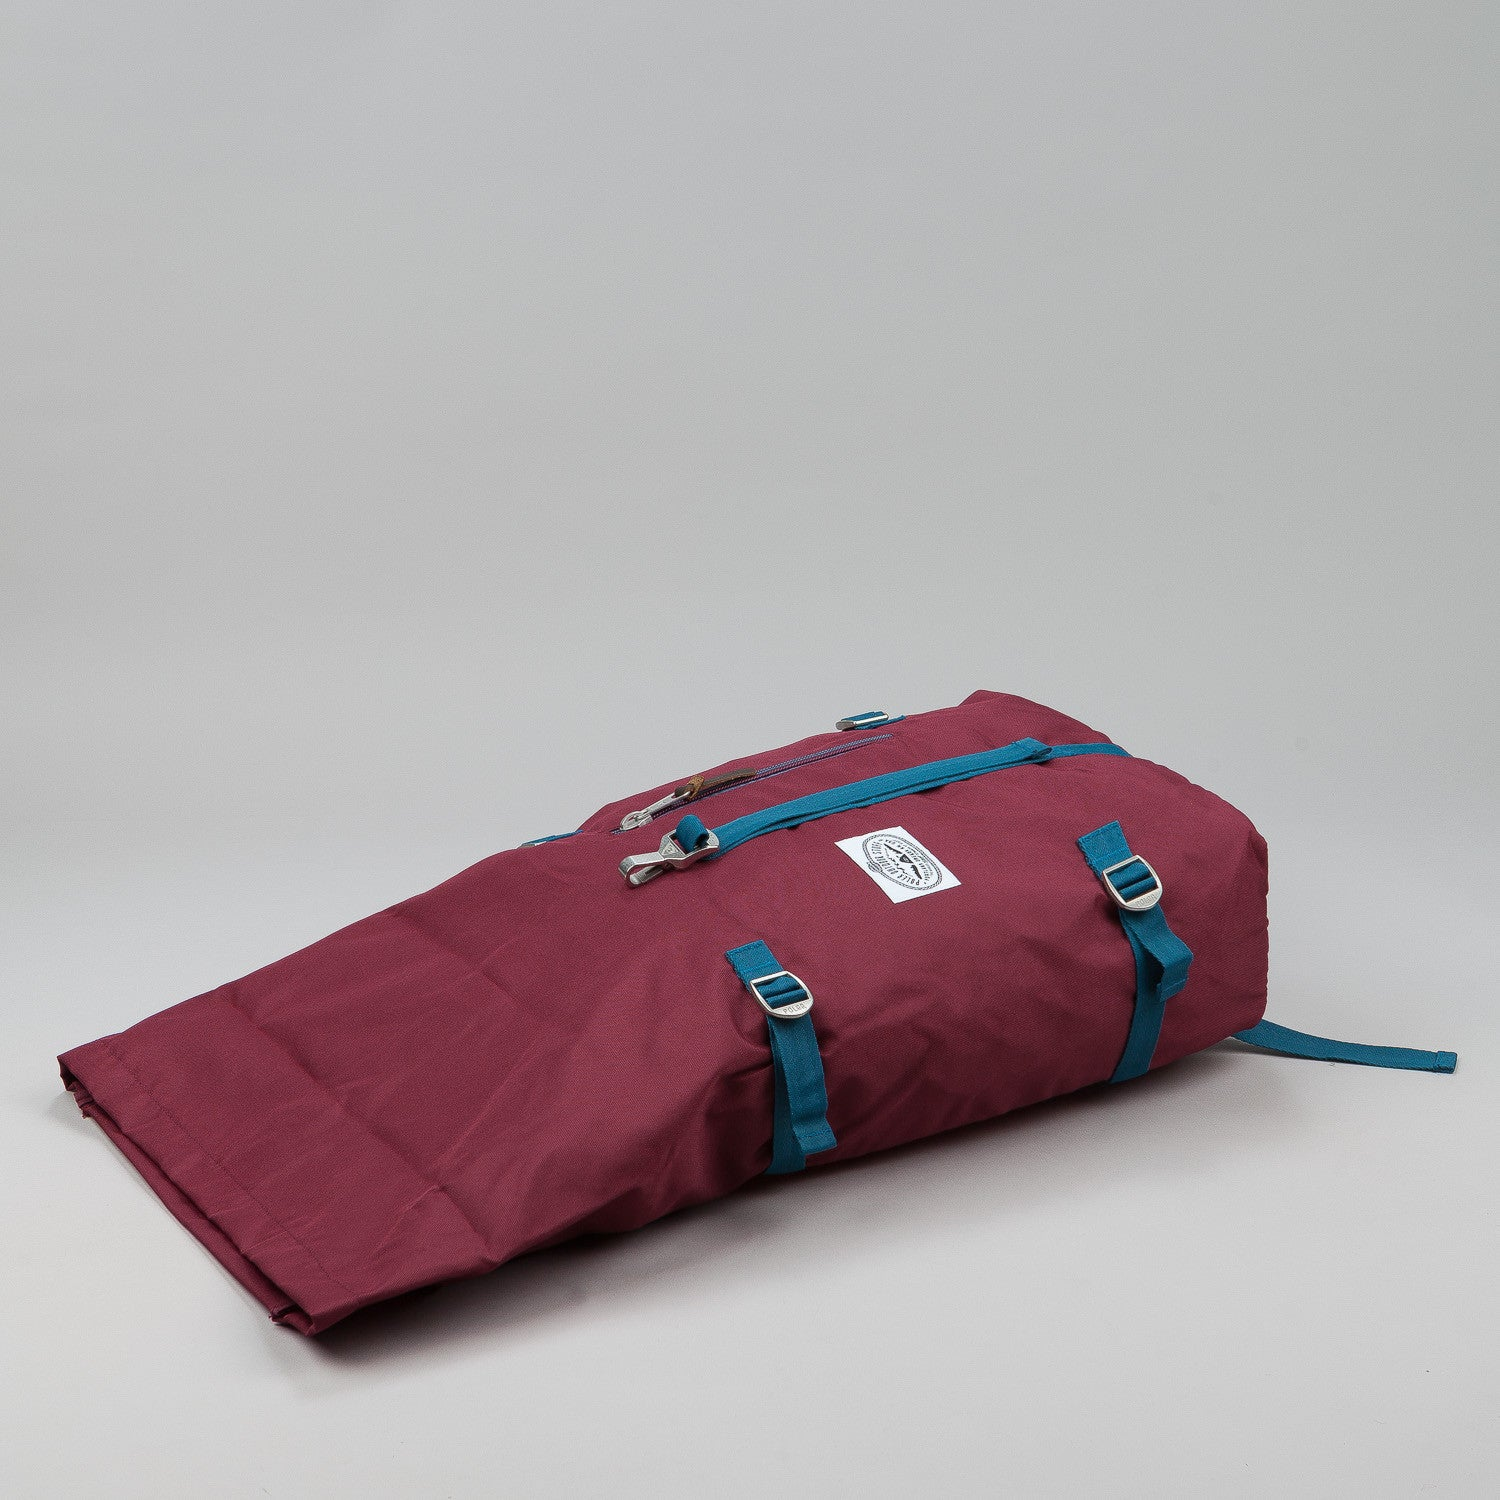 Poler Rolltop Backpack - Burgundy / Red